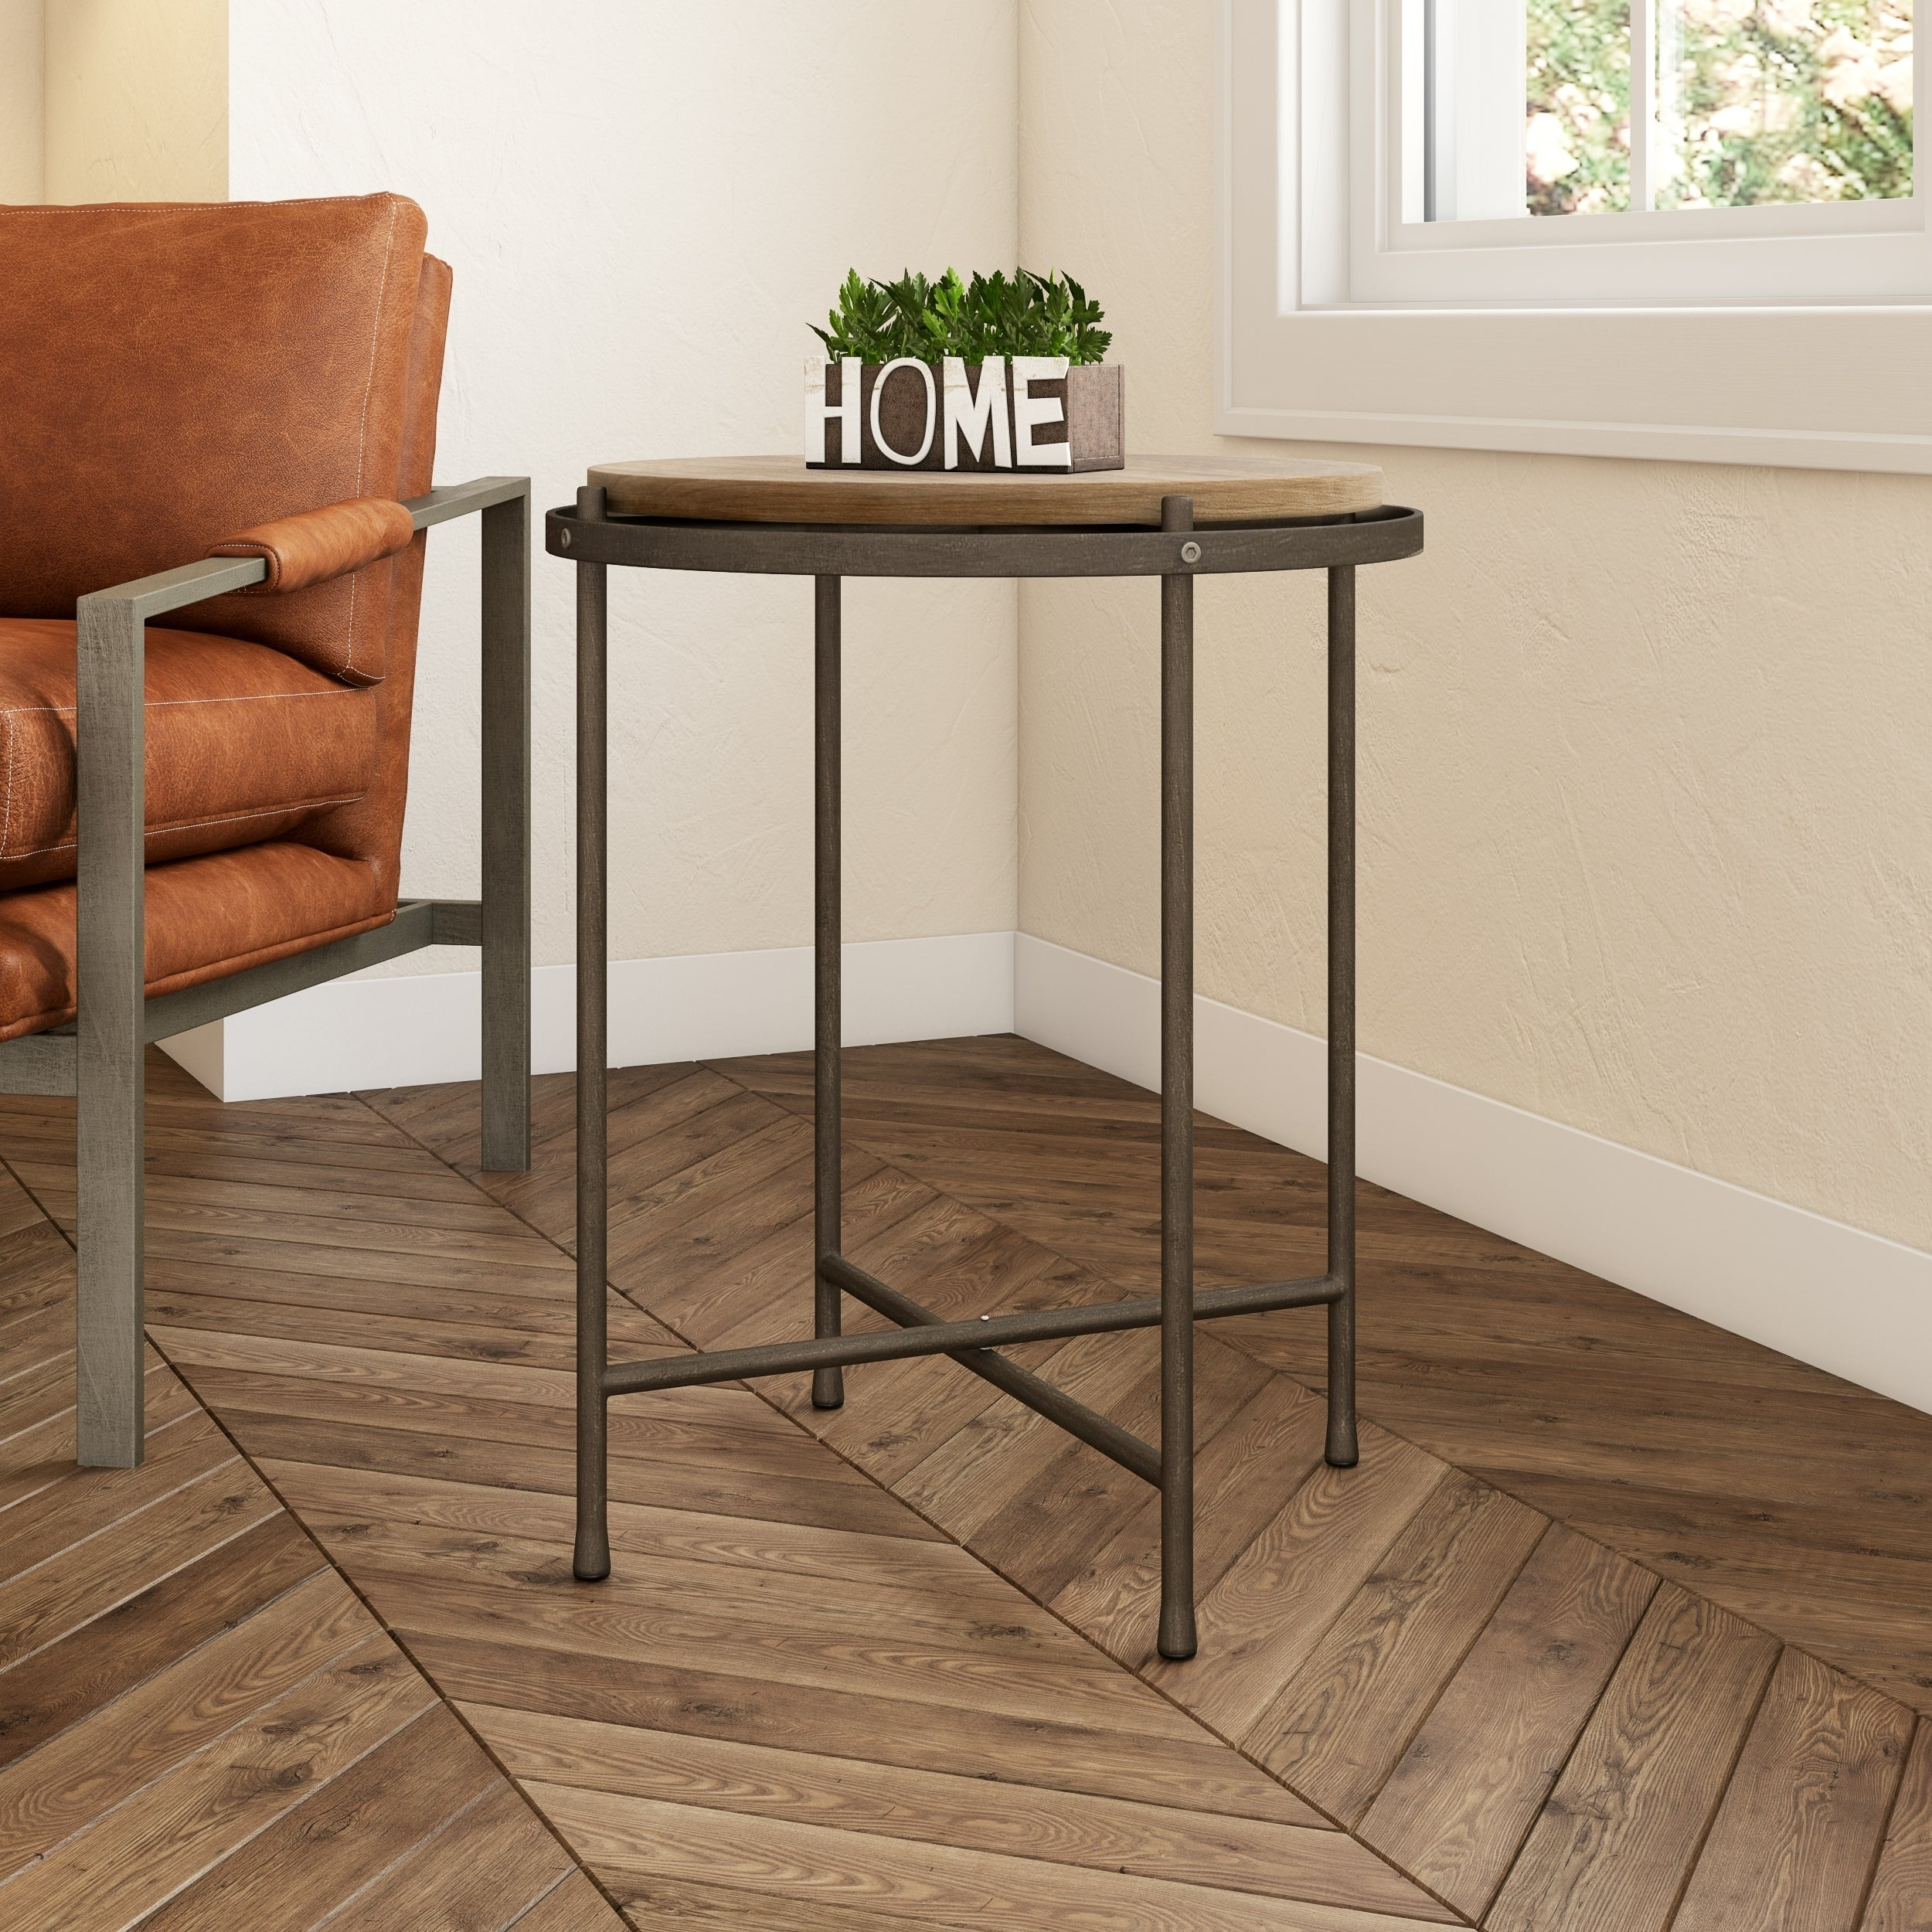 - Shop Patton Industrial Accent Table - 21.5